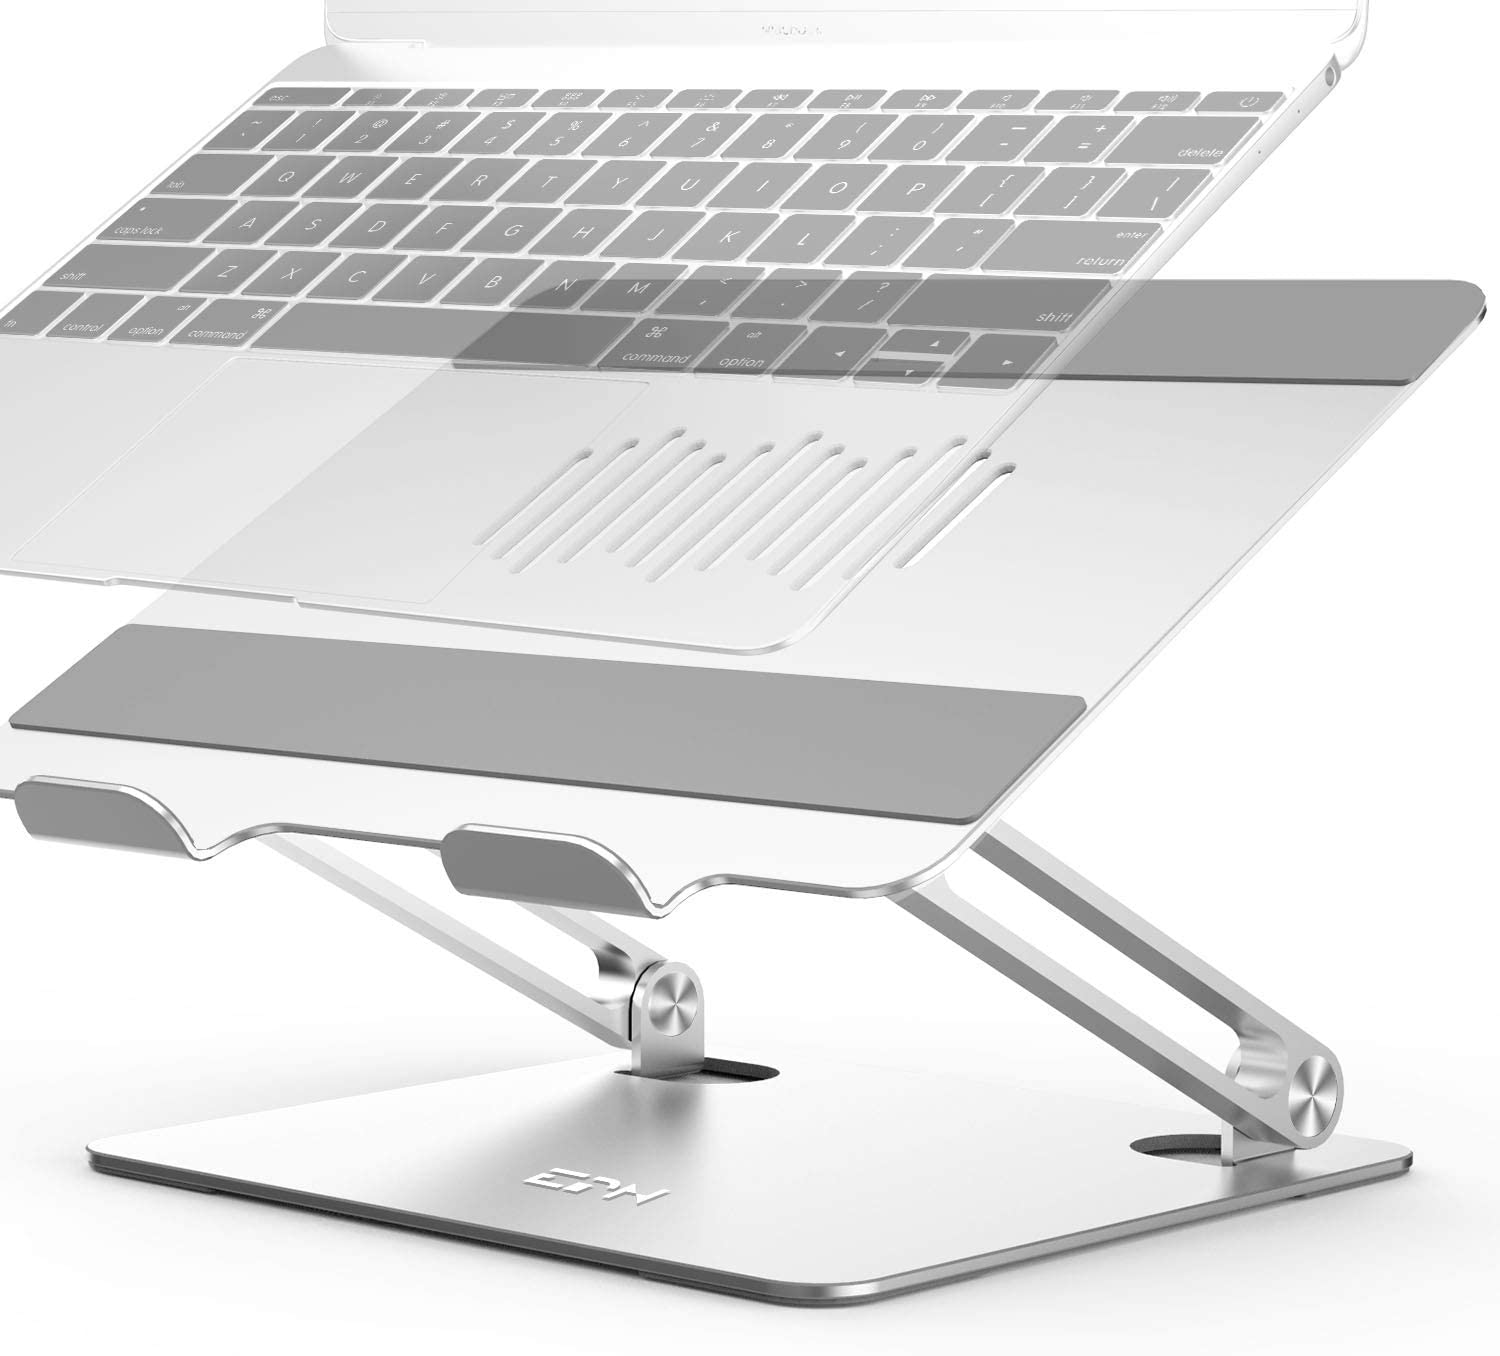 "Laptop Stand, EPN Adjustable Laptop Holder, Multi-Angle Laptop Riser with Heat-Vent to Elevate Laptop, Adjustable Notebook Stand for MacBook Pro/Air, Dell, HP, Lenovo, More 10-16"" Laptops Silver"